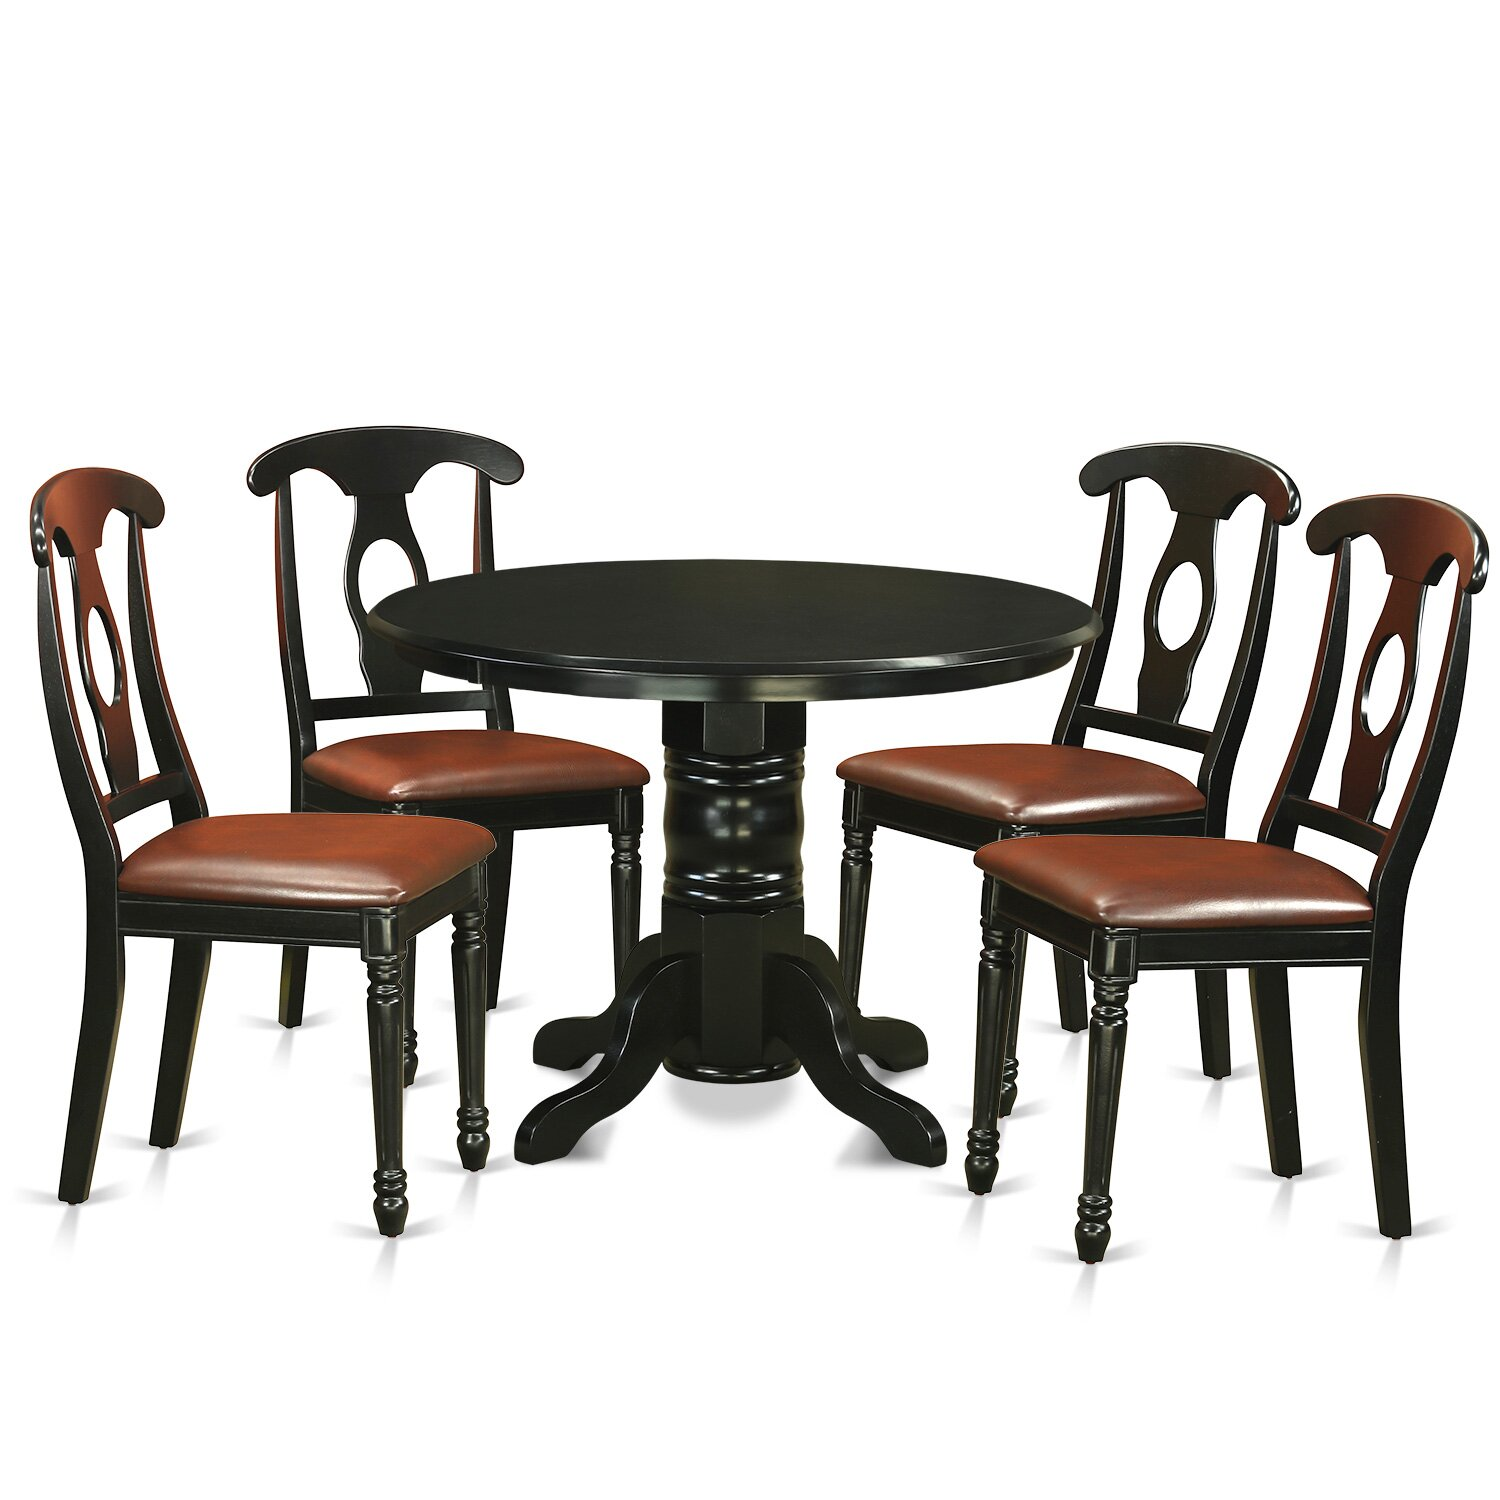 East west shelton 5 piece dining set reviews wayfair for 4 piece dining table set